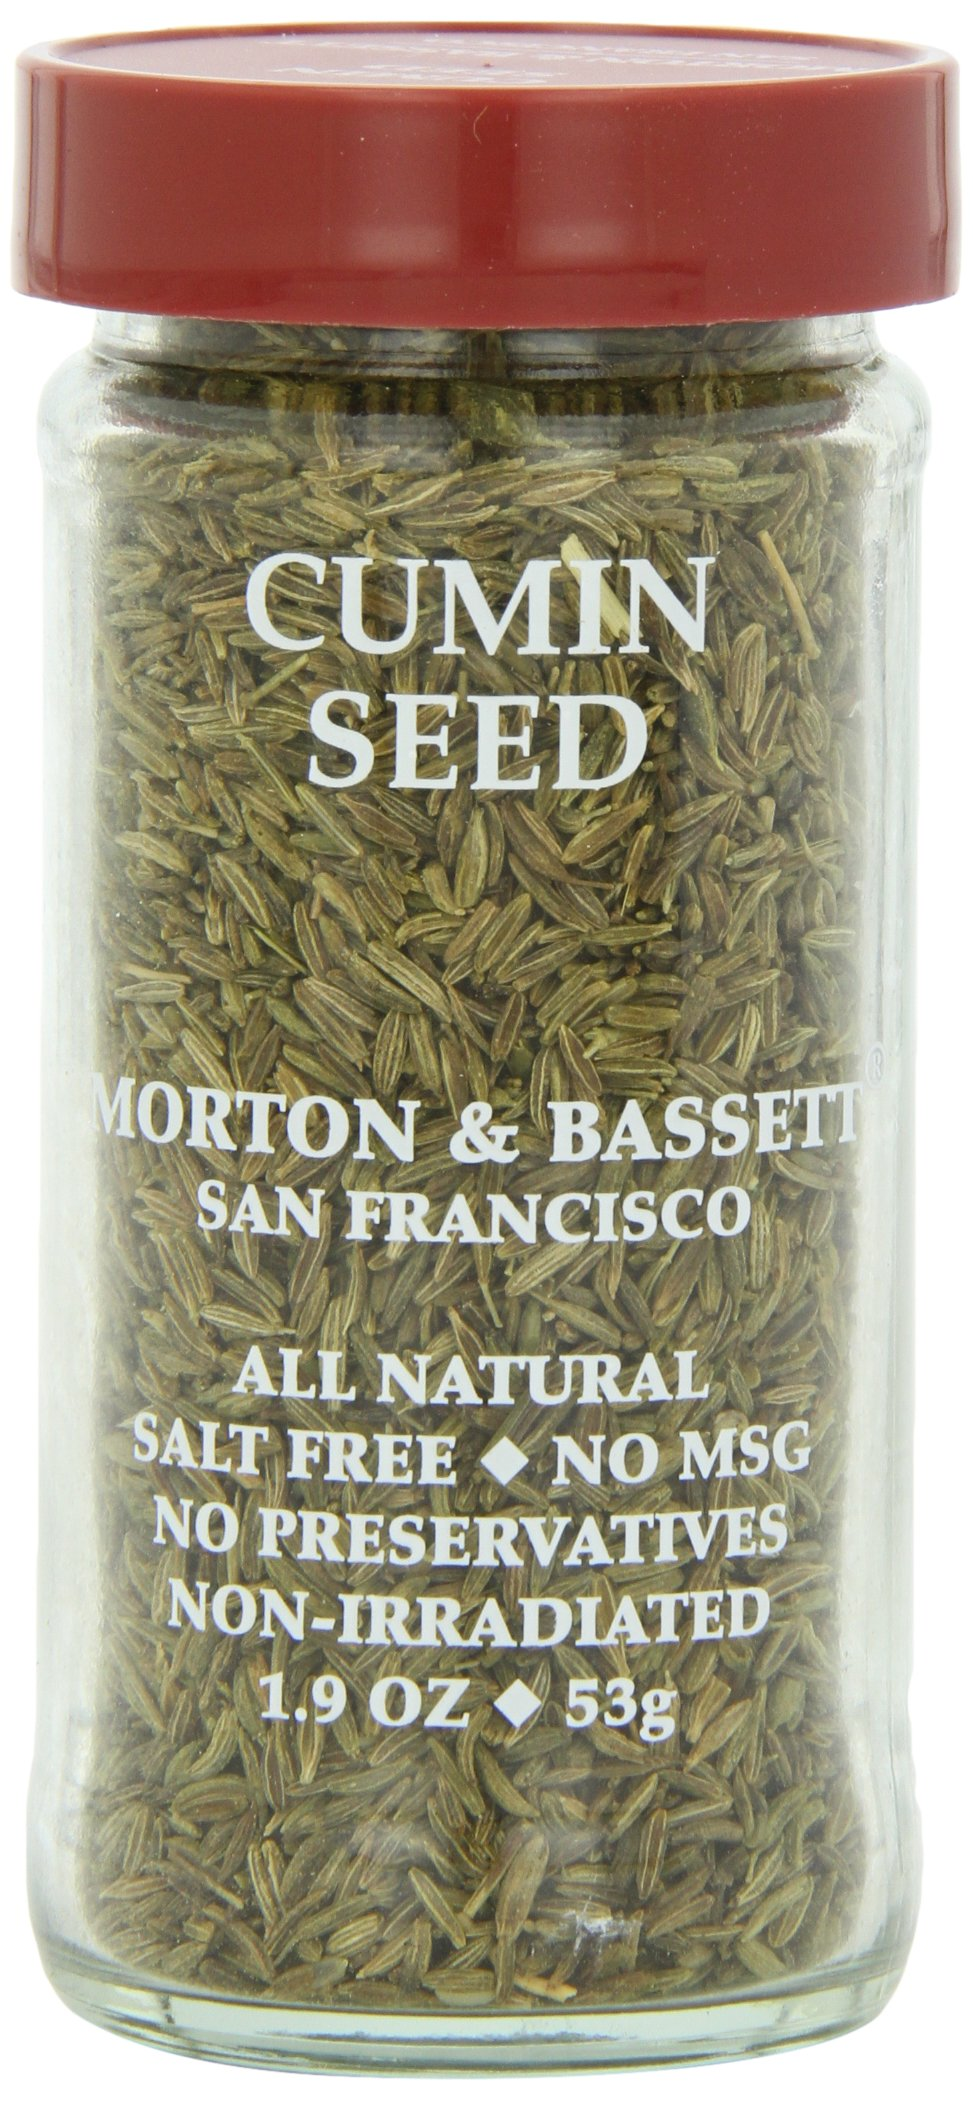 Morton & Basset Spices, Cumin Seed, 1.9 Ounce (Pack of 3)